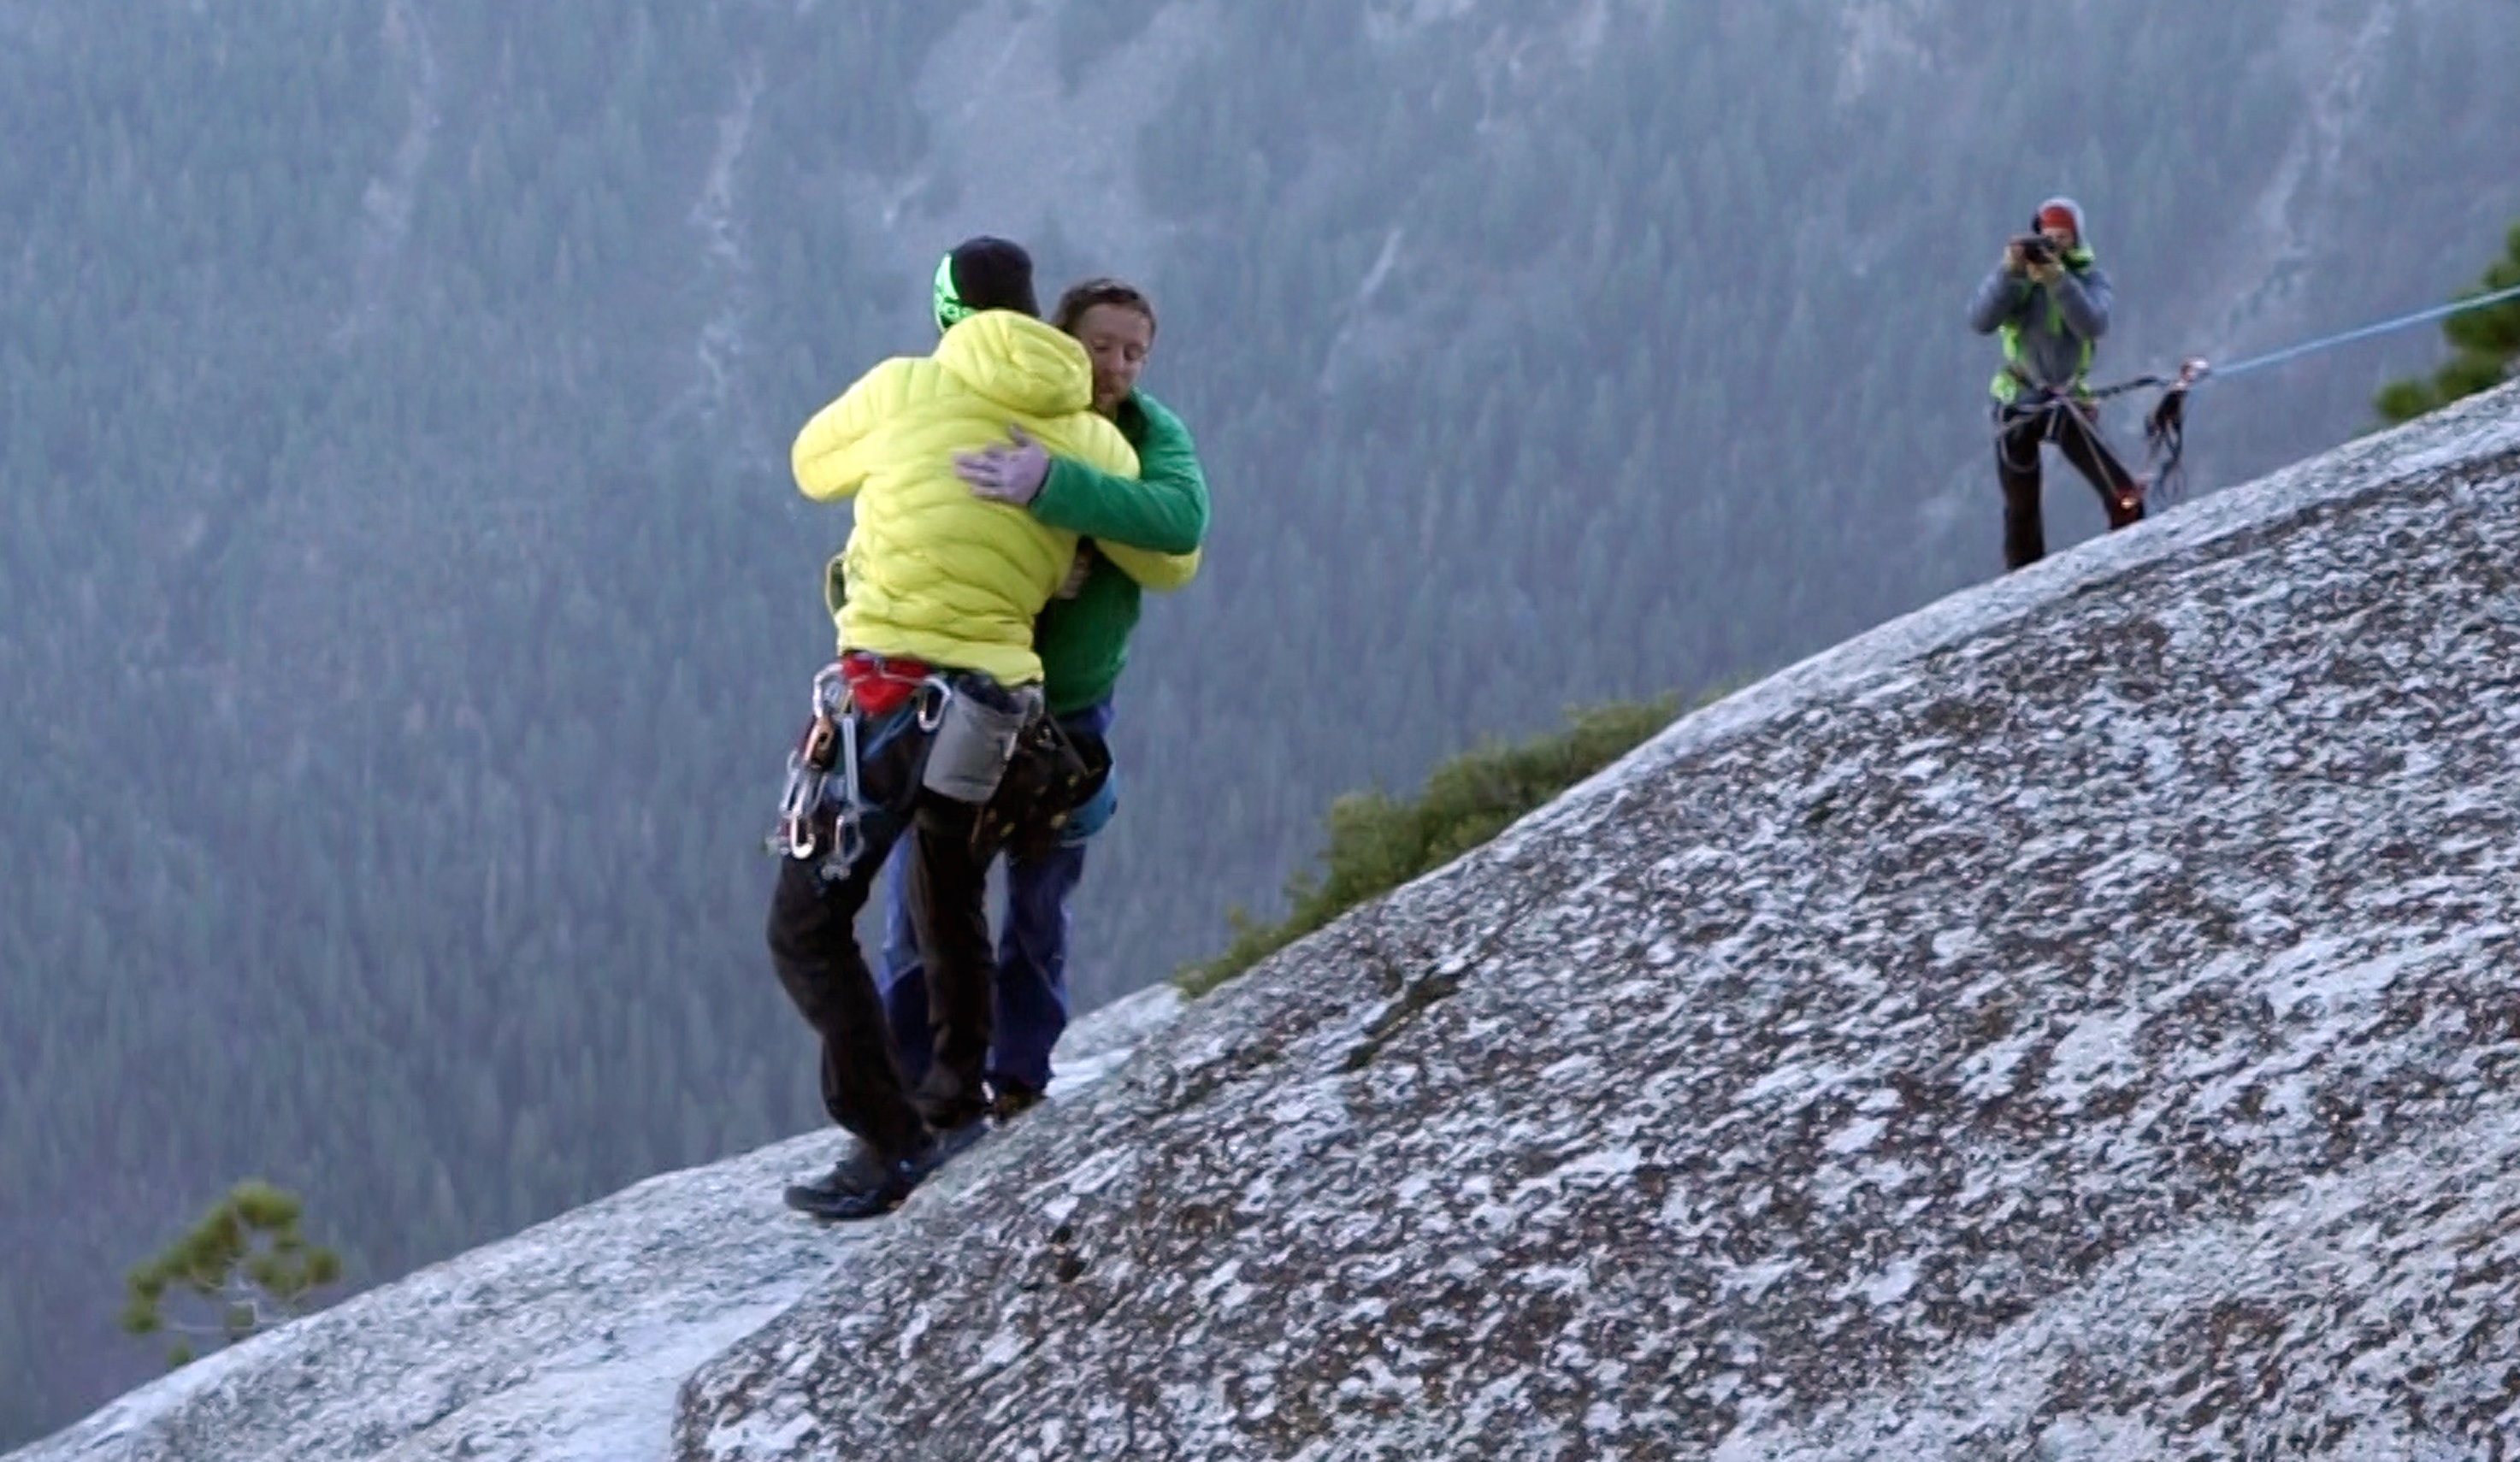 <p>Kevin Jorgeson, left, and Tommy Caldwell embrace each other after reaching the top of El Capitan, a 3,000-foot sheer granite face in Yosemite National Park, Calif. </p>